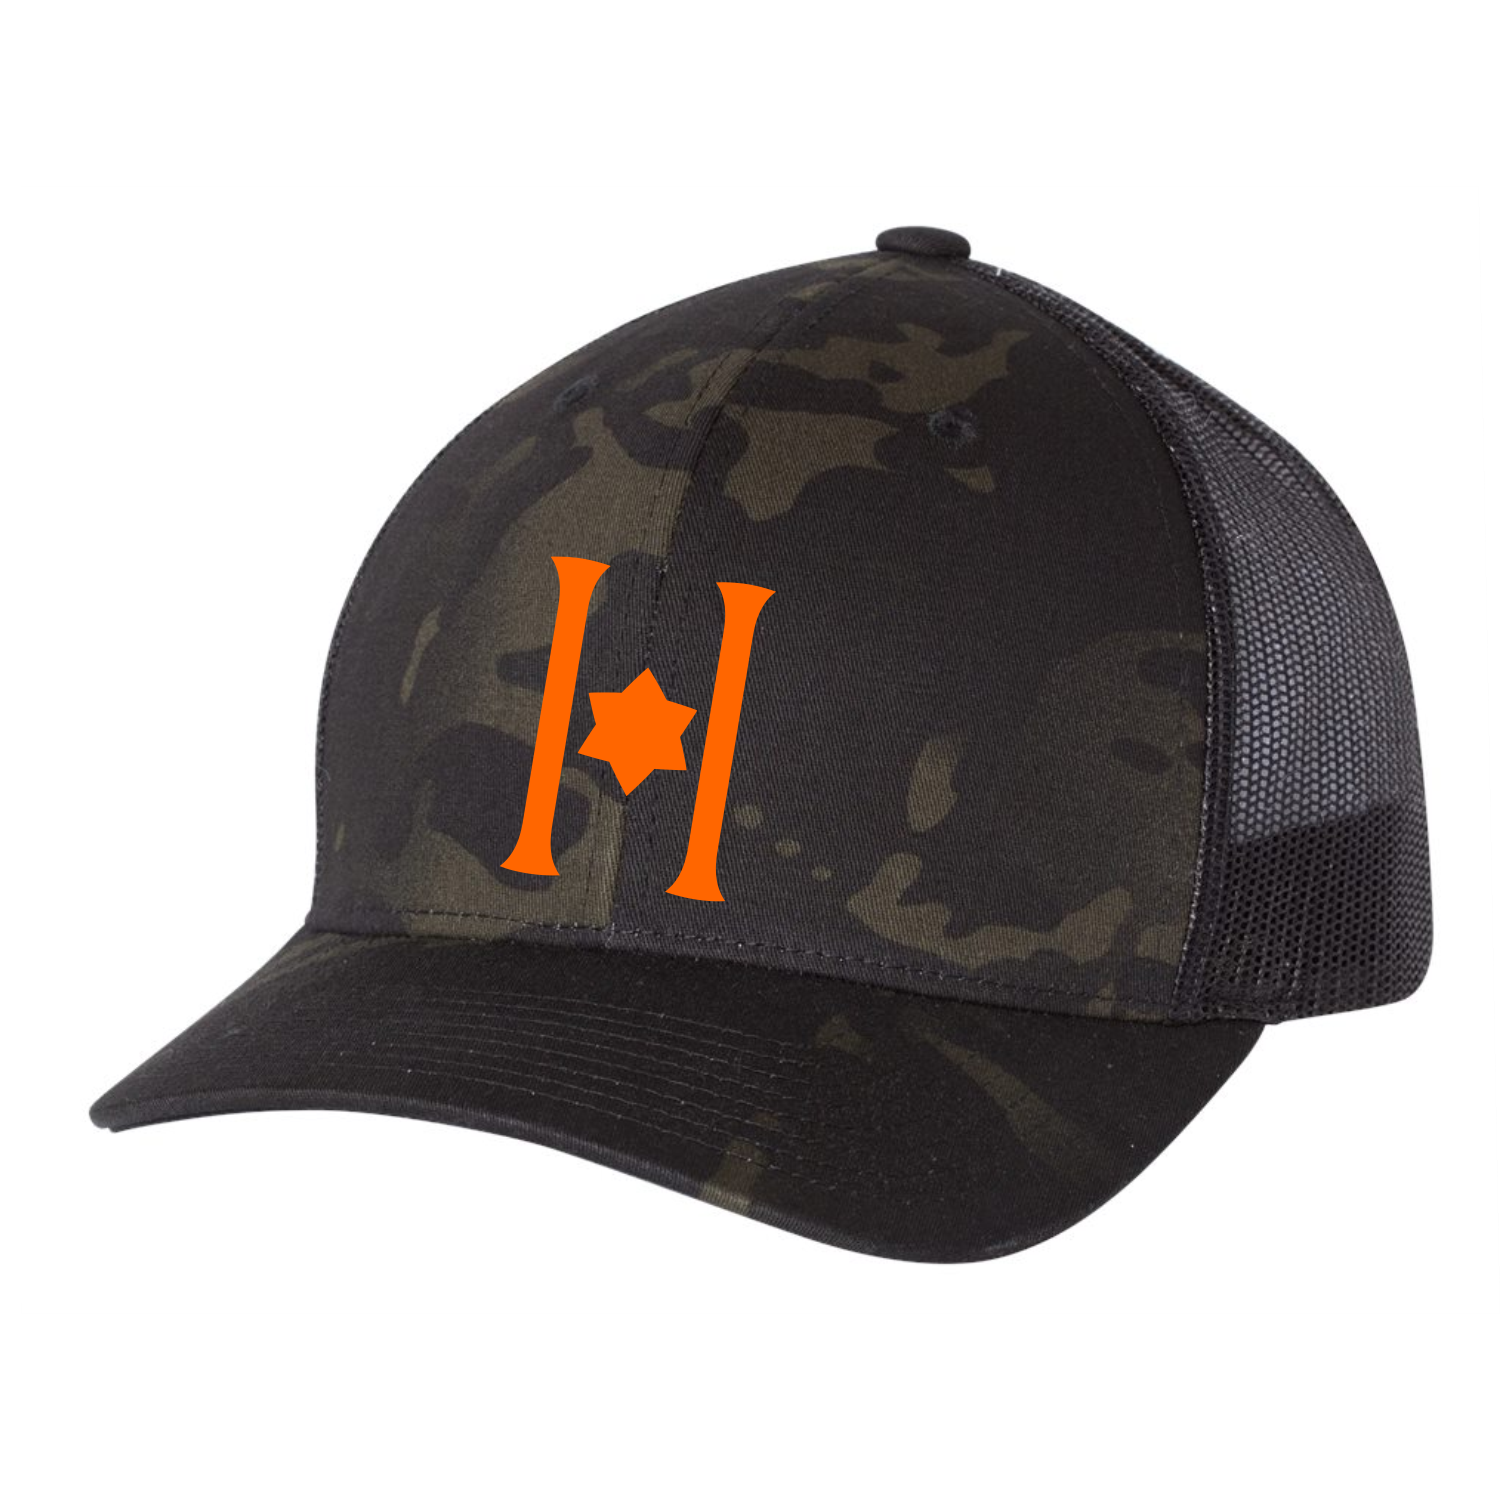 Camo Trucker Cap w/ Neon Orange H Logo (Boys)